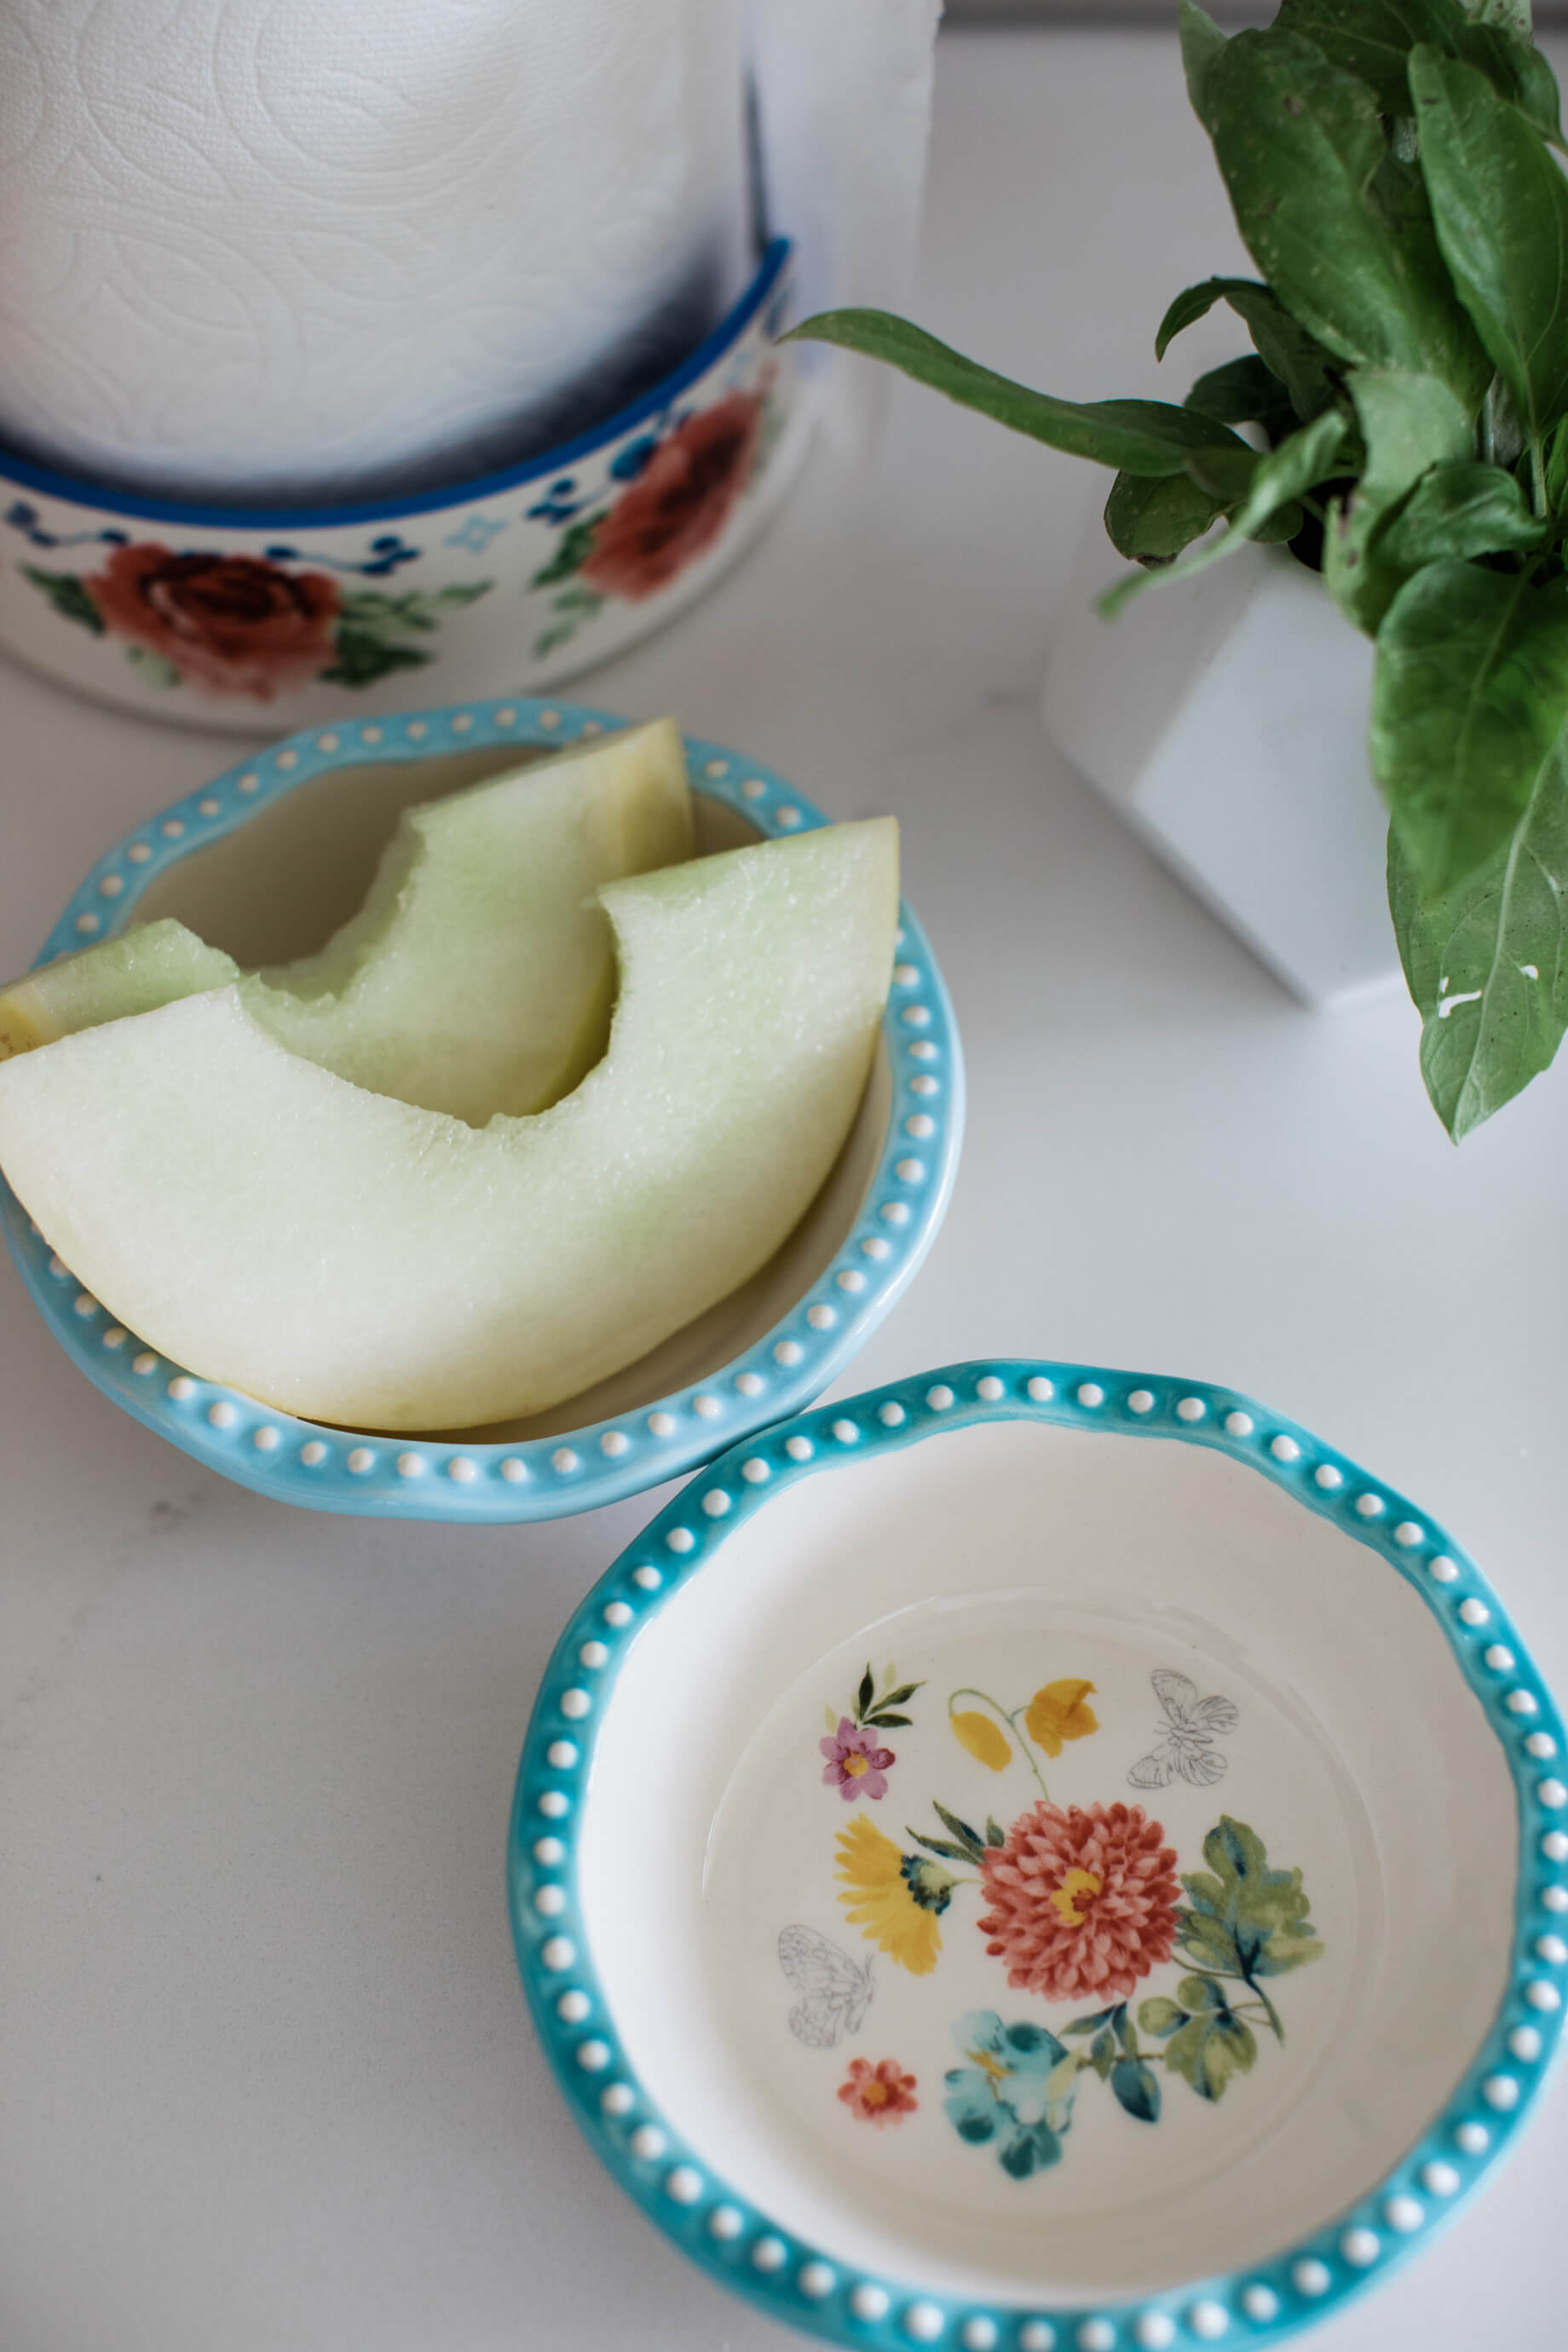 floral kitchen bowls that are perfect for breakfast or prep work - M Loves M @marmar